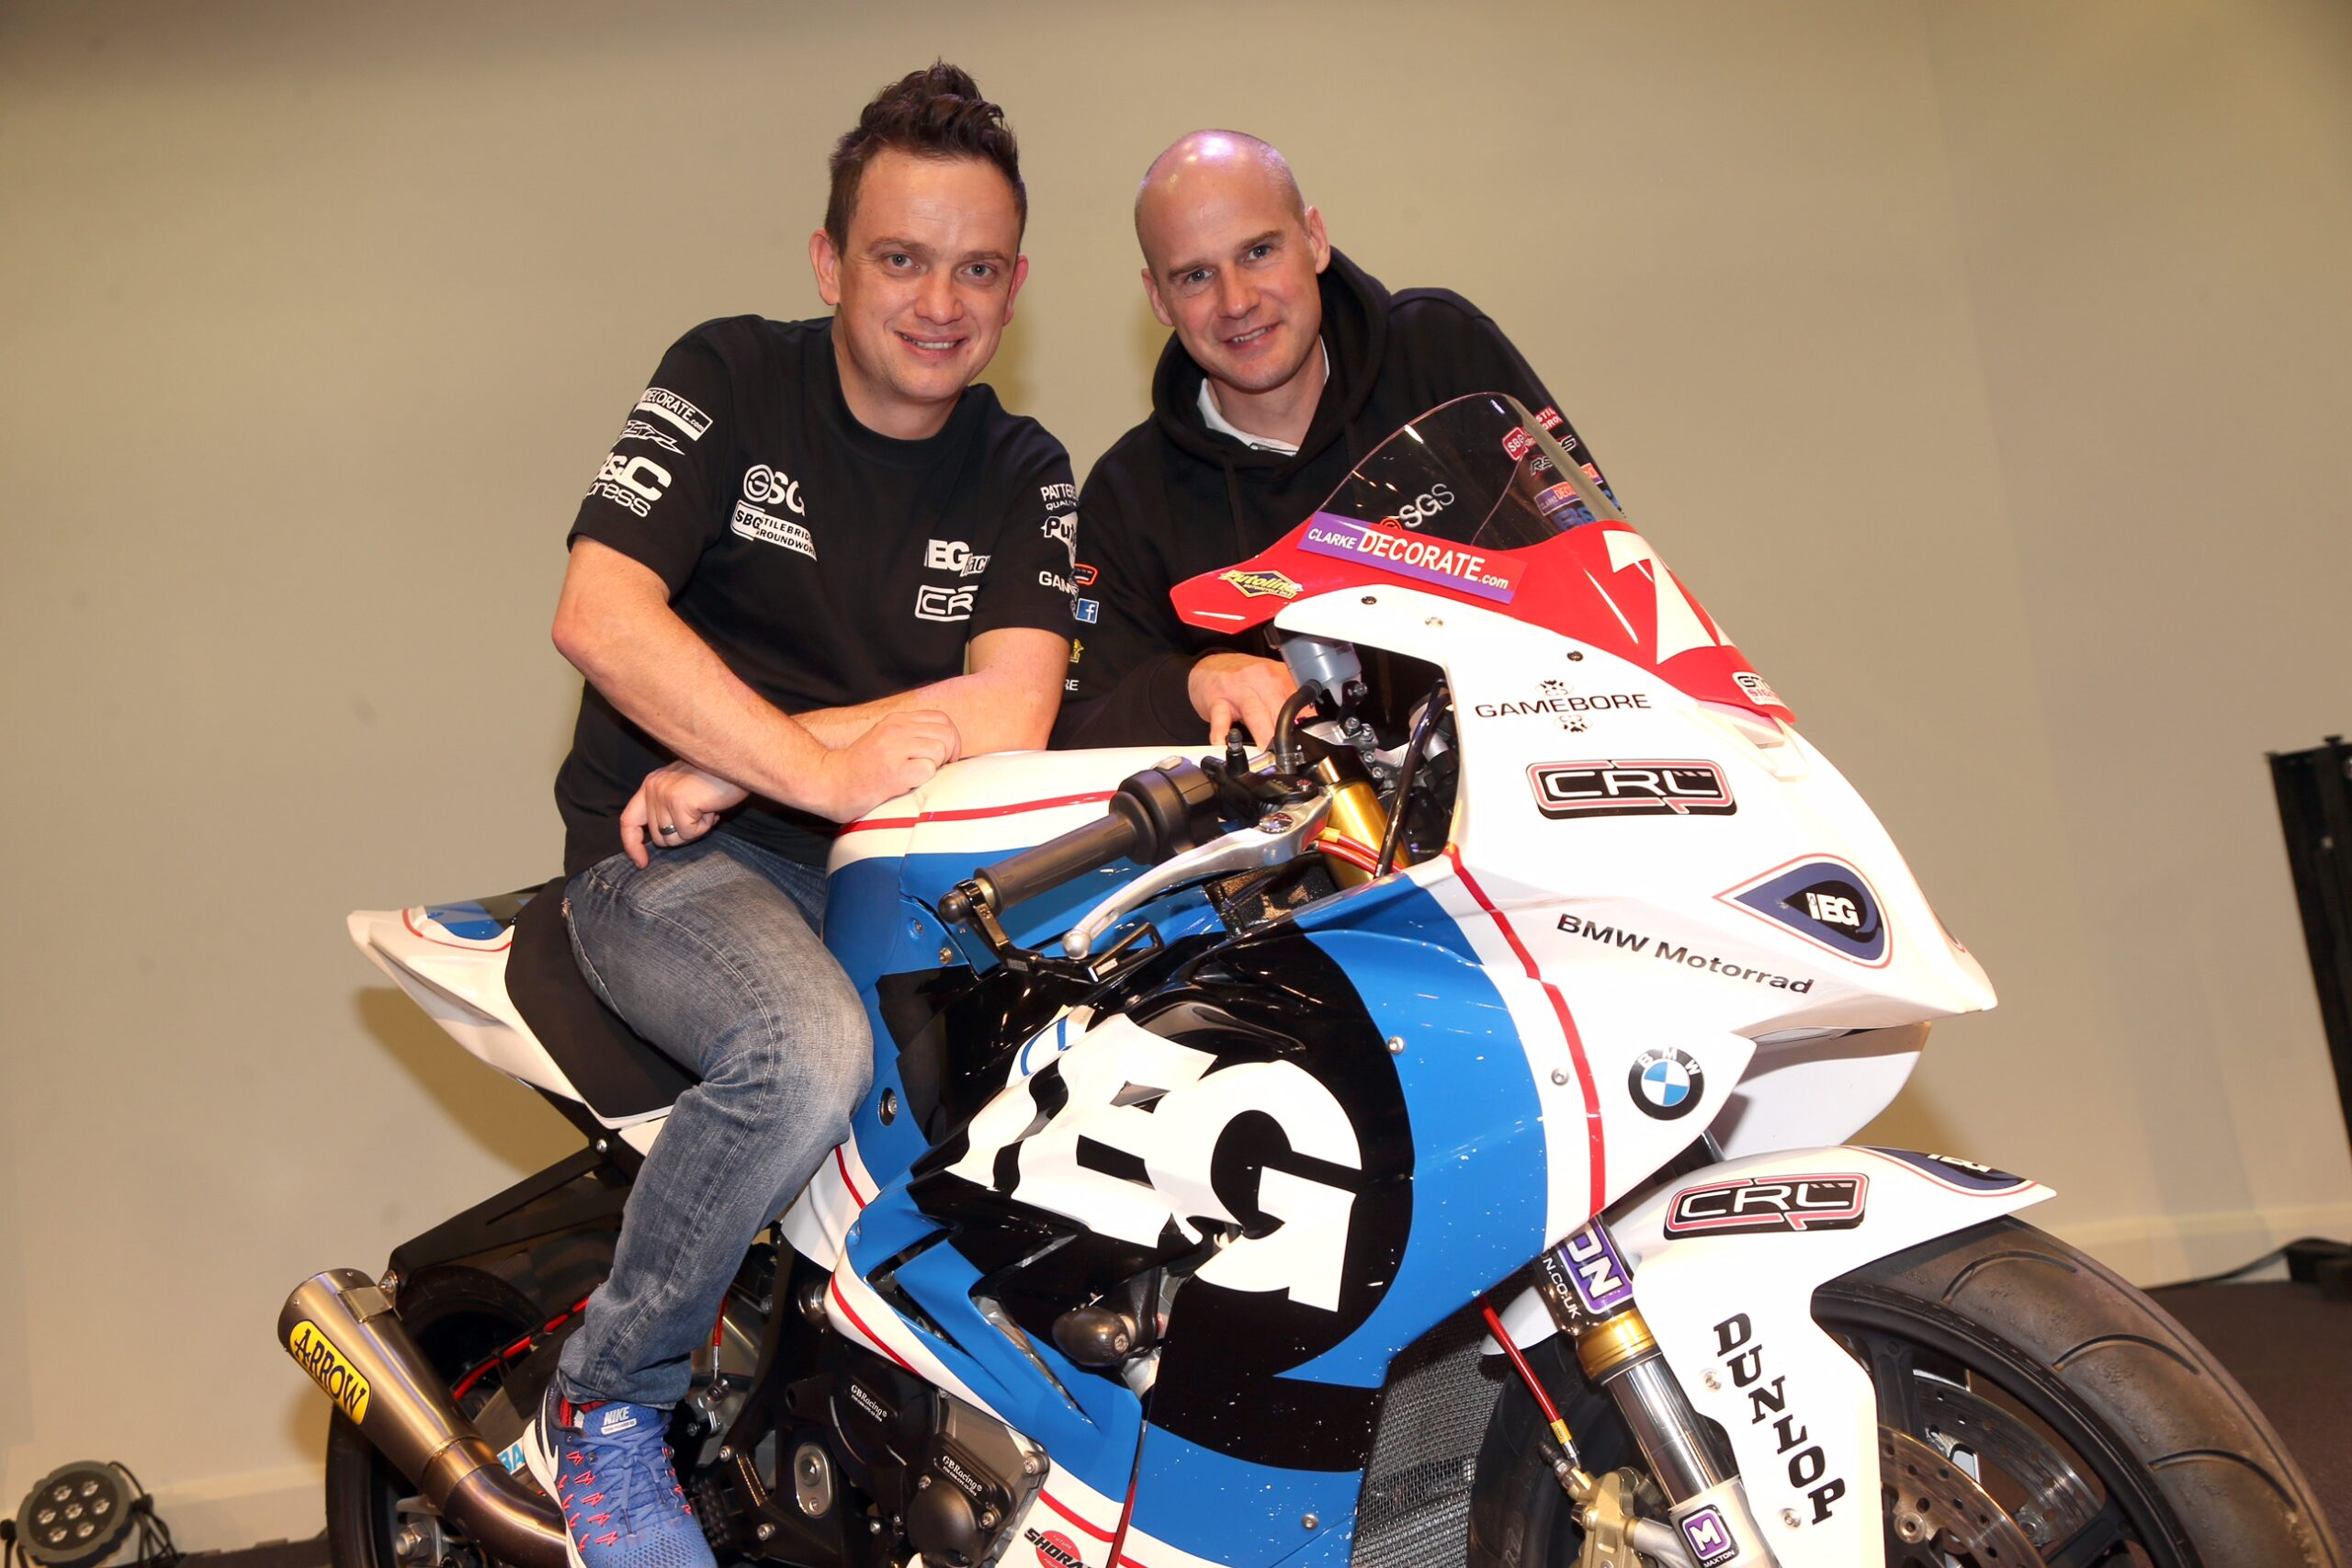 Ryan Farquhar Delighted With KMR's North West 200/TT Line Up